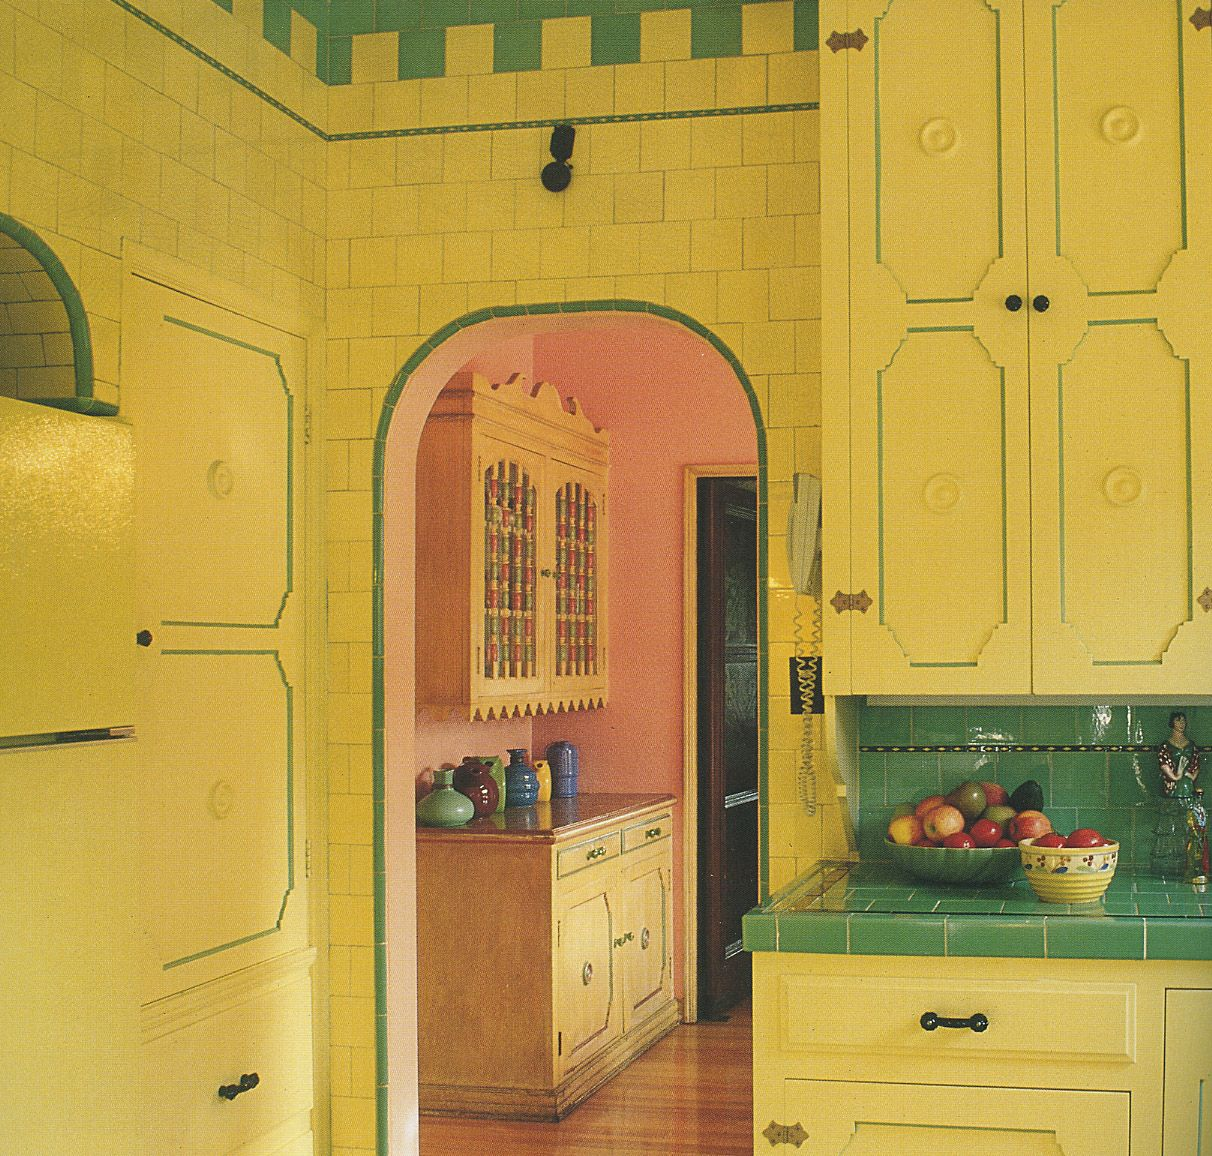 Original Cabinetry And Tile In 1931 Spanish Revival Westwood Home From Casa Californ Simple Kitchen Remodel Inexpensive Kitchen Remodel Kitchen Remodel Layout